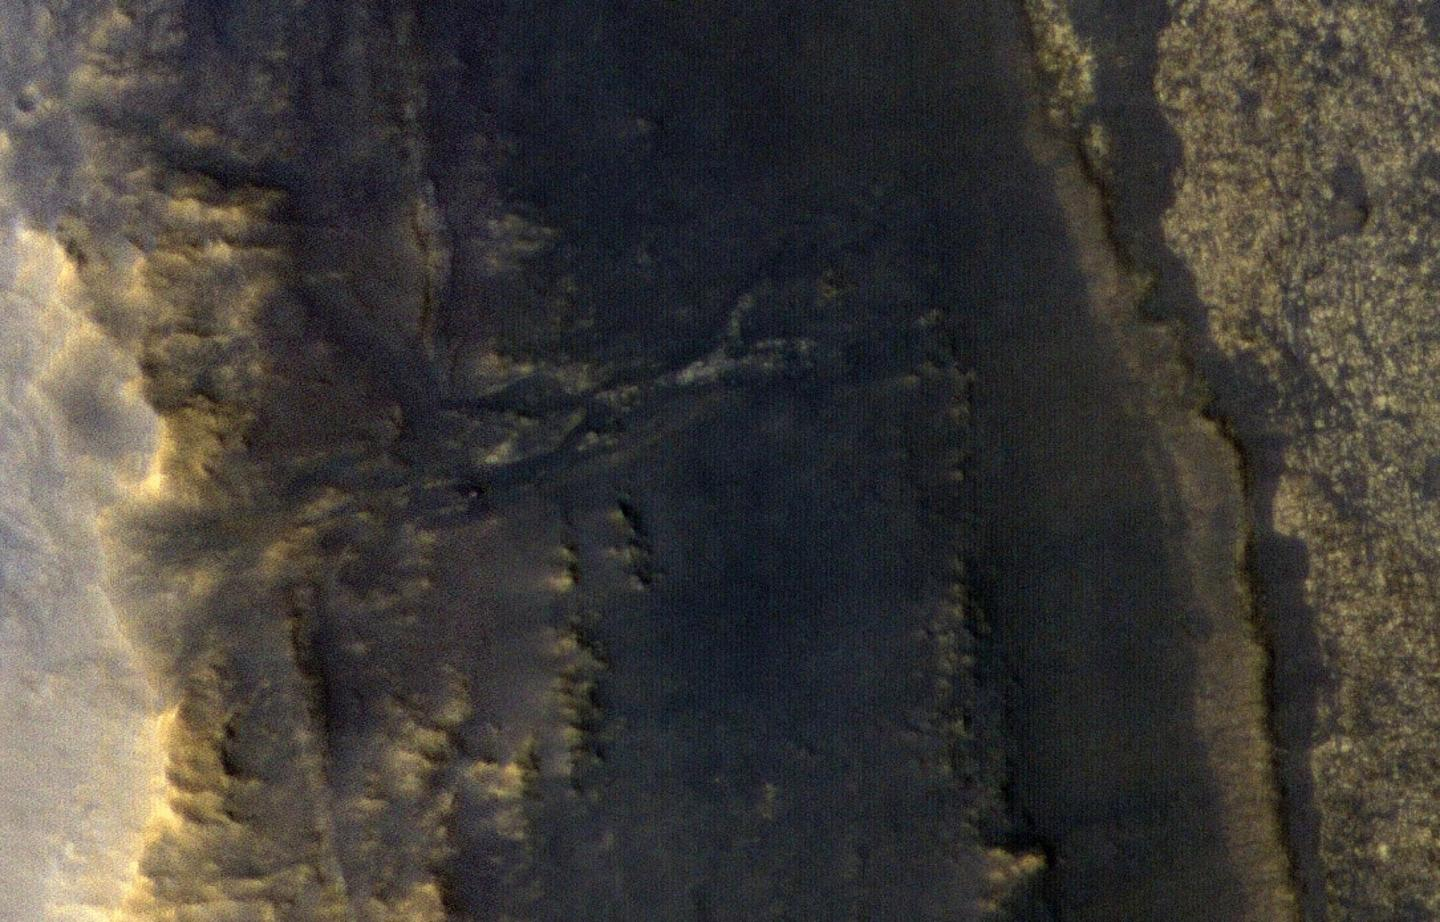 Opportunity is a small dot in the valley on the middle left of the image